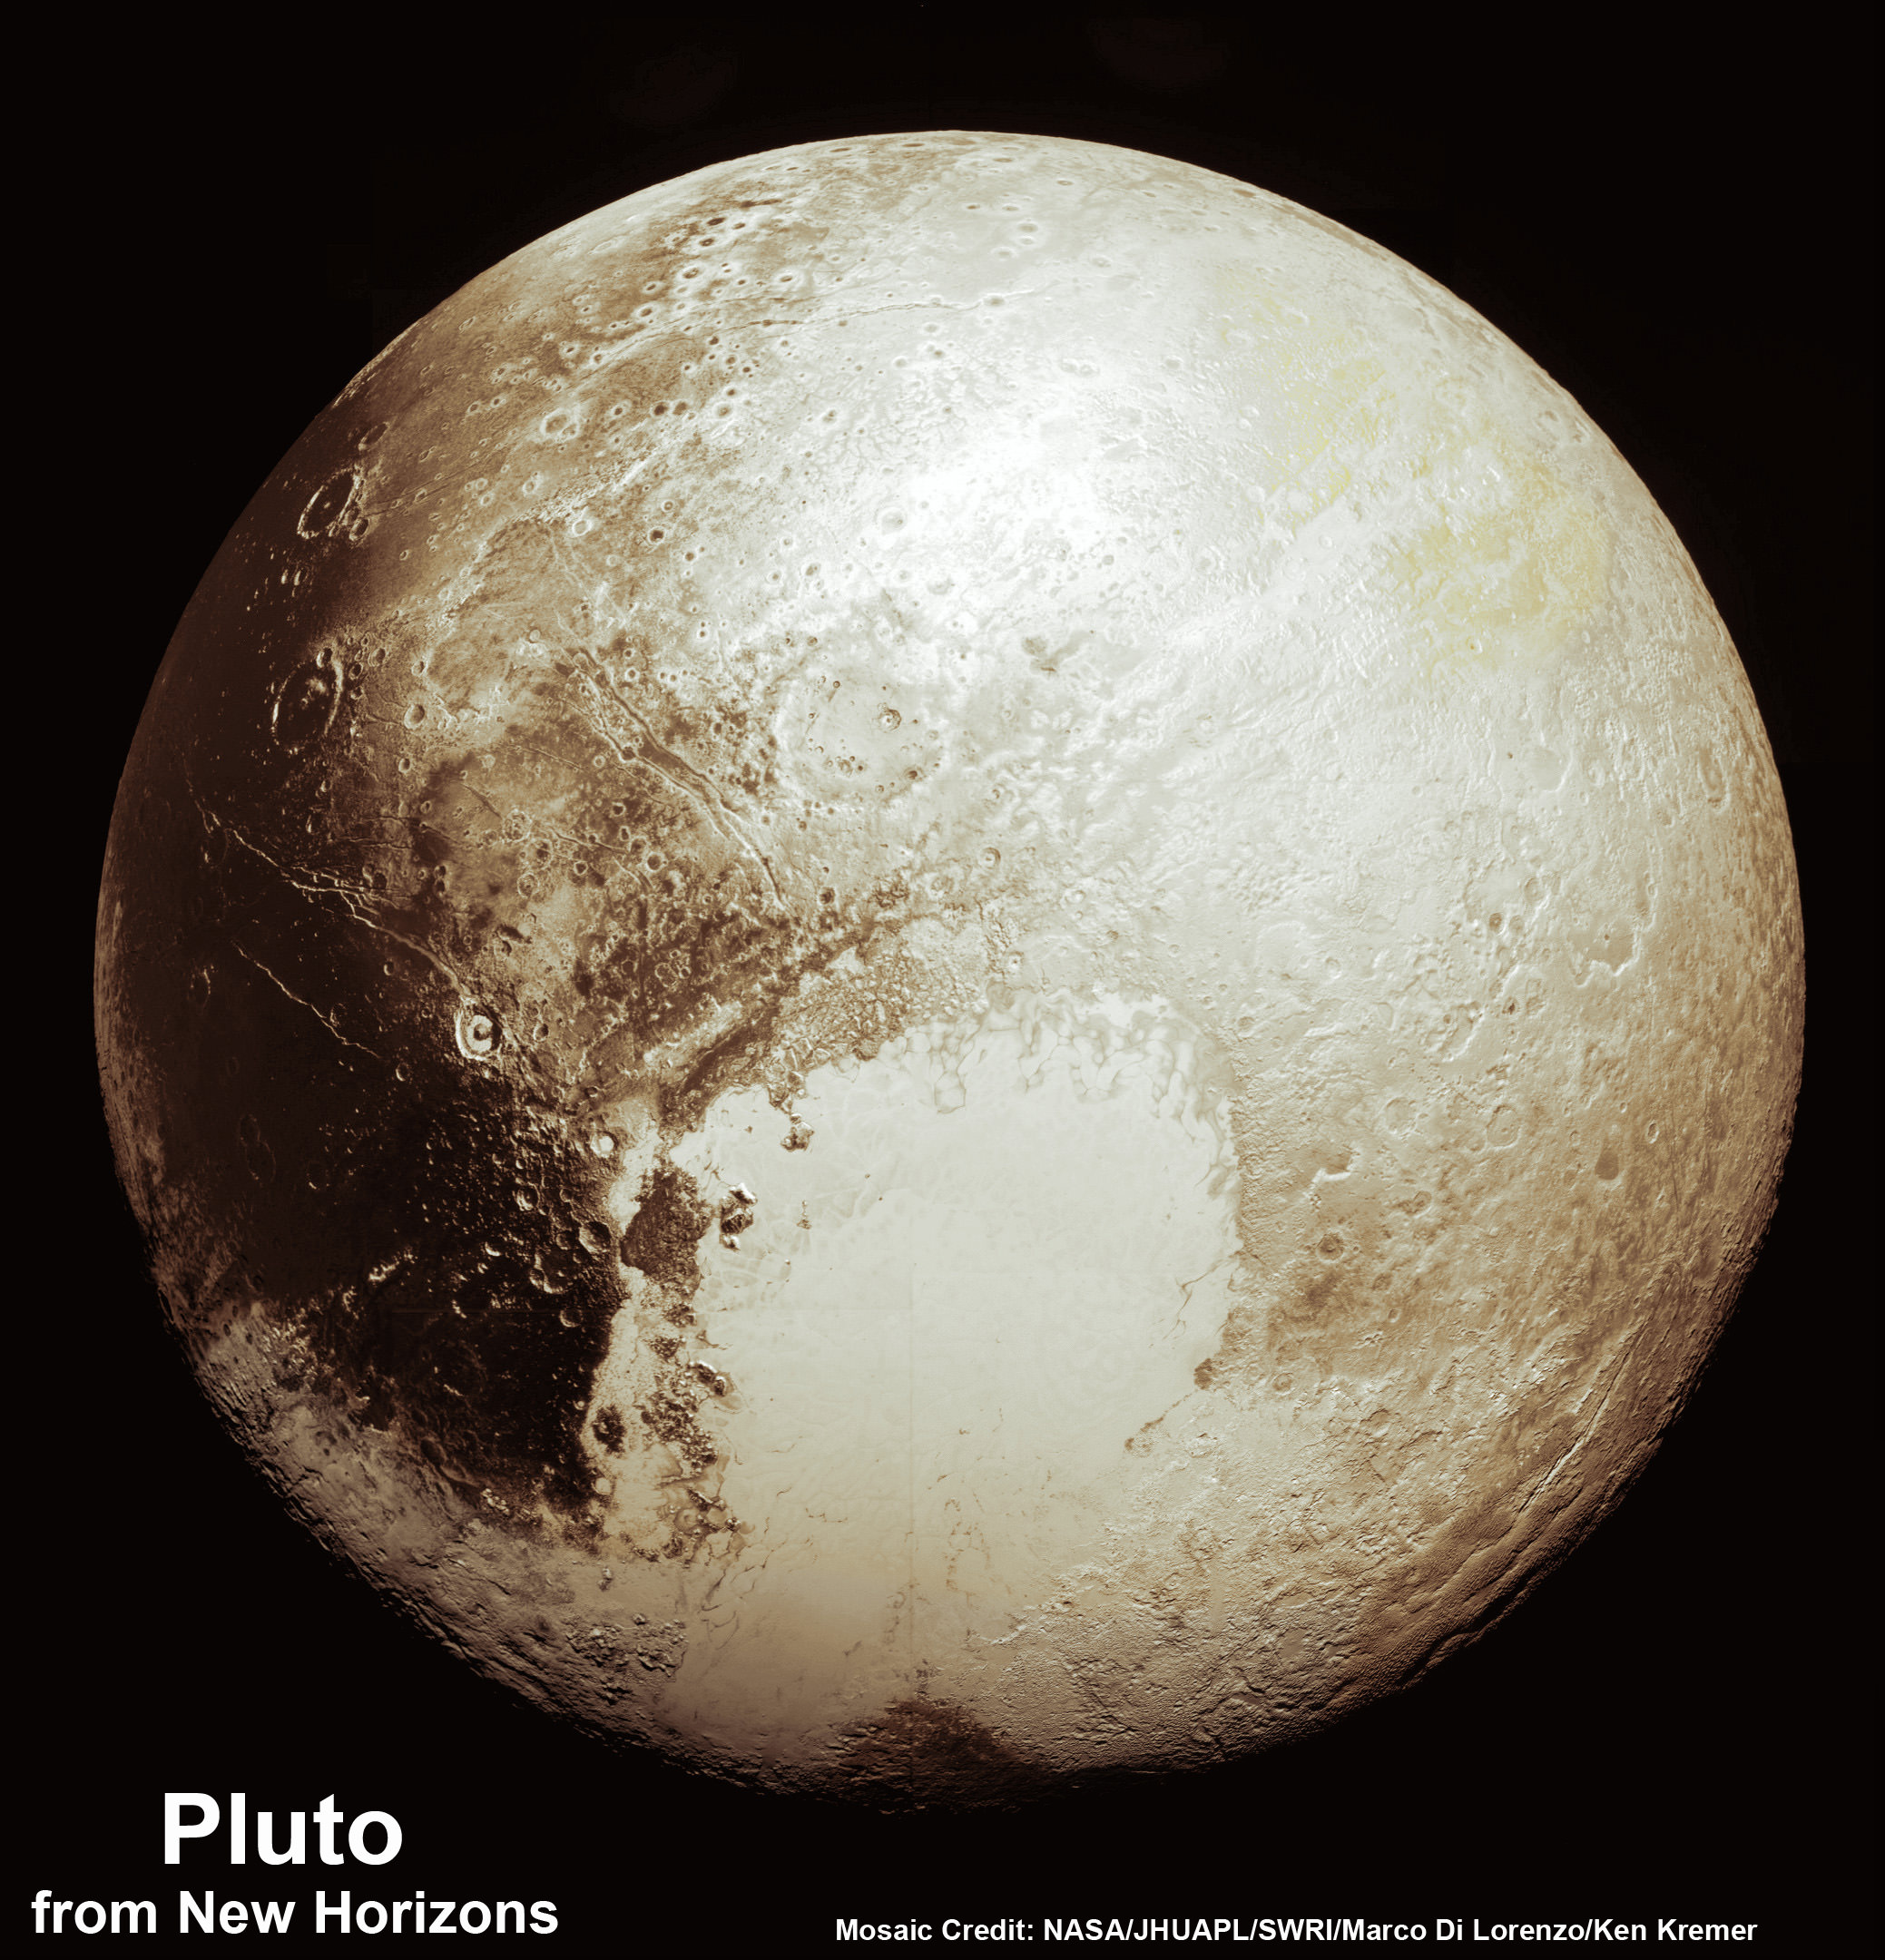 This new global mosaic view of Pluto was created from the latest high-resolution images to be downlinked from NASA's New Horizons spacecraft and released on Sept. 11, 2015.   The images were taken as New Horizons flew past Pluto on July 14, 2015, from a distance of 50,000 miles (80,000 kilometers).  This new mosaic was stitched from over two dozen raw images captured by the LORRI imager and colorized.  Credits: NASA/Johns Hopkins University Applied Physics Laboratory/Southwest Research Institute/Marco Di Lorenzo/Ken Kremer/kenkremer.com